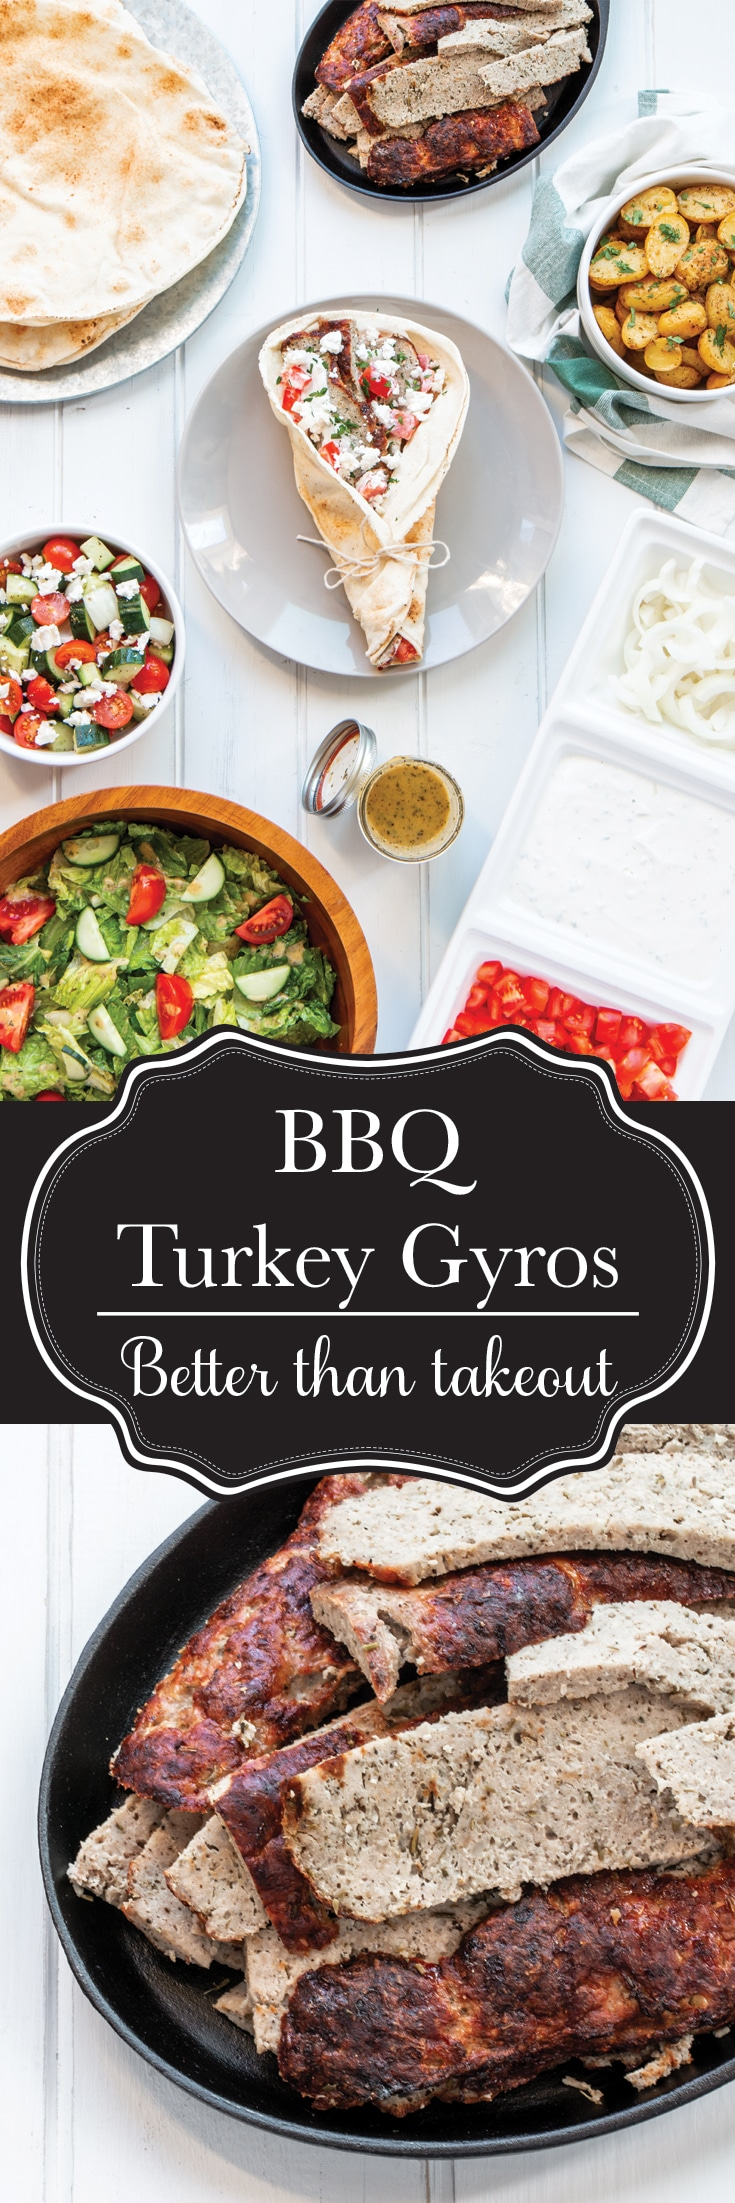 Turkey Gyros are the healthy, superfood alternative to your favourite take-out. And they're just as easy to make as it is to dial the phone and drive to pick them up. Delicious, low in fat and cholesterol, but high in flavour, these will be a new staple to your BBQ routine!